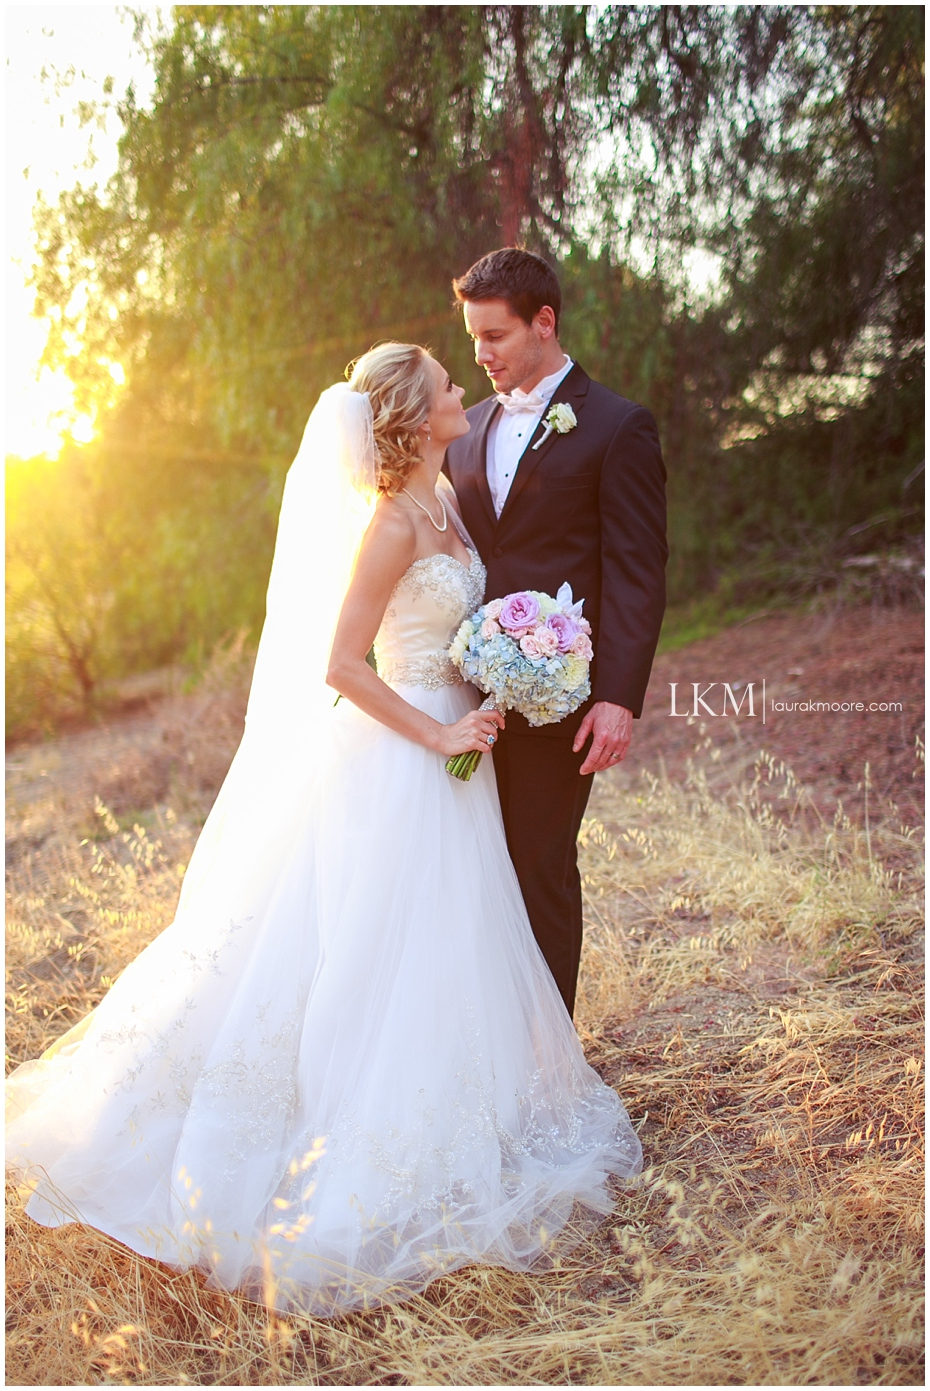 Kristen-Dalton-Celebrity-Wedding-Photography-The-Vineyards-Simi-Valley_0134.jpg